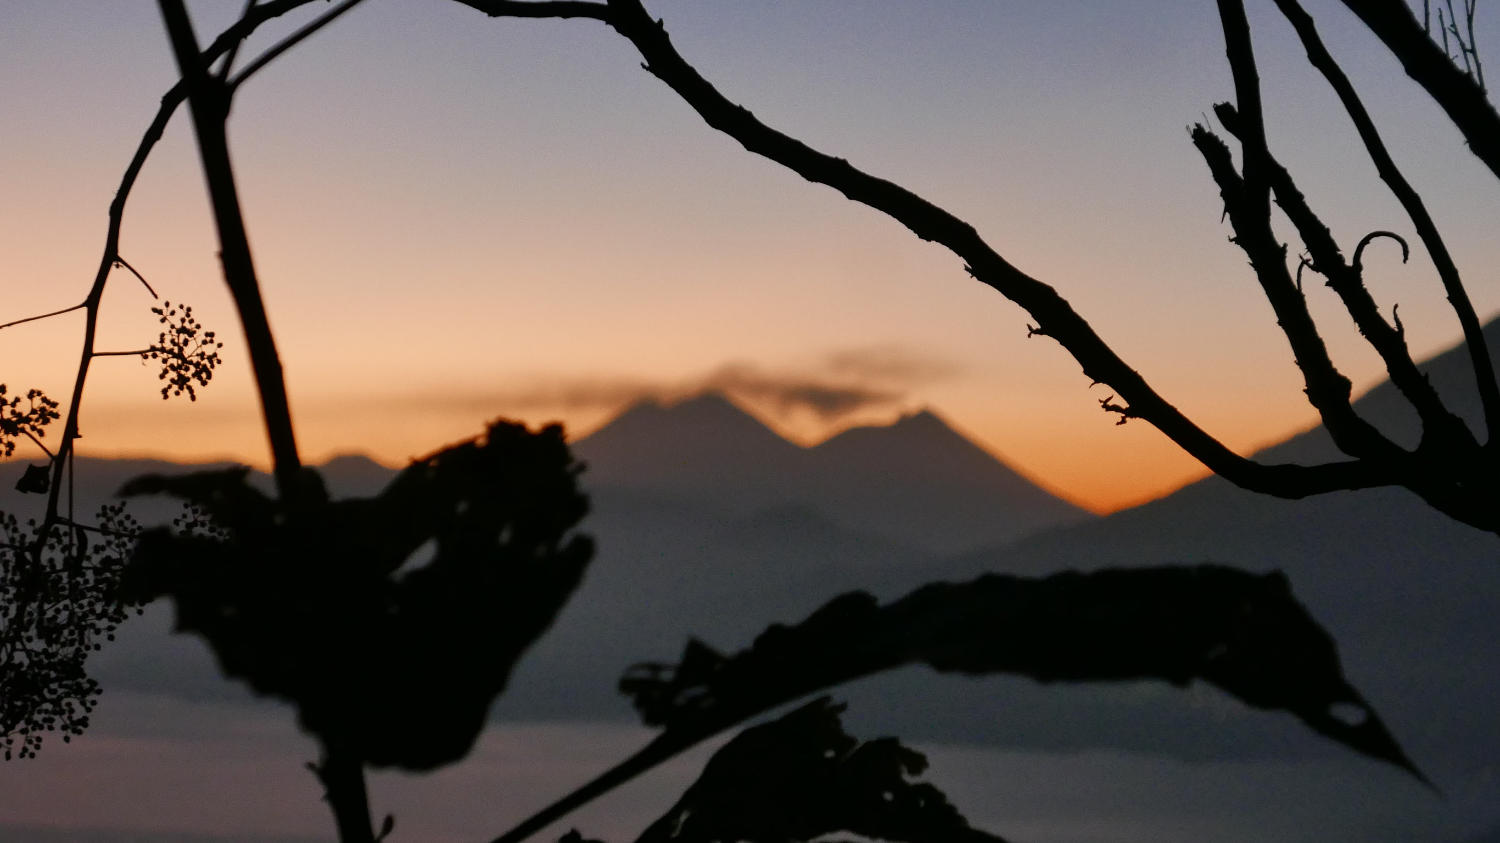 Just before sunrise at Lake Atitlan. Clouds hanging over Fuego volcano